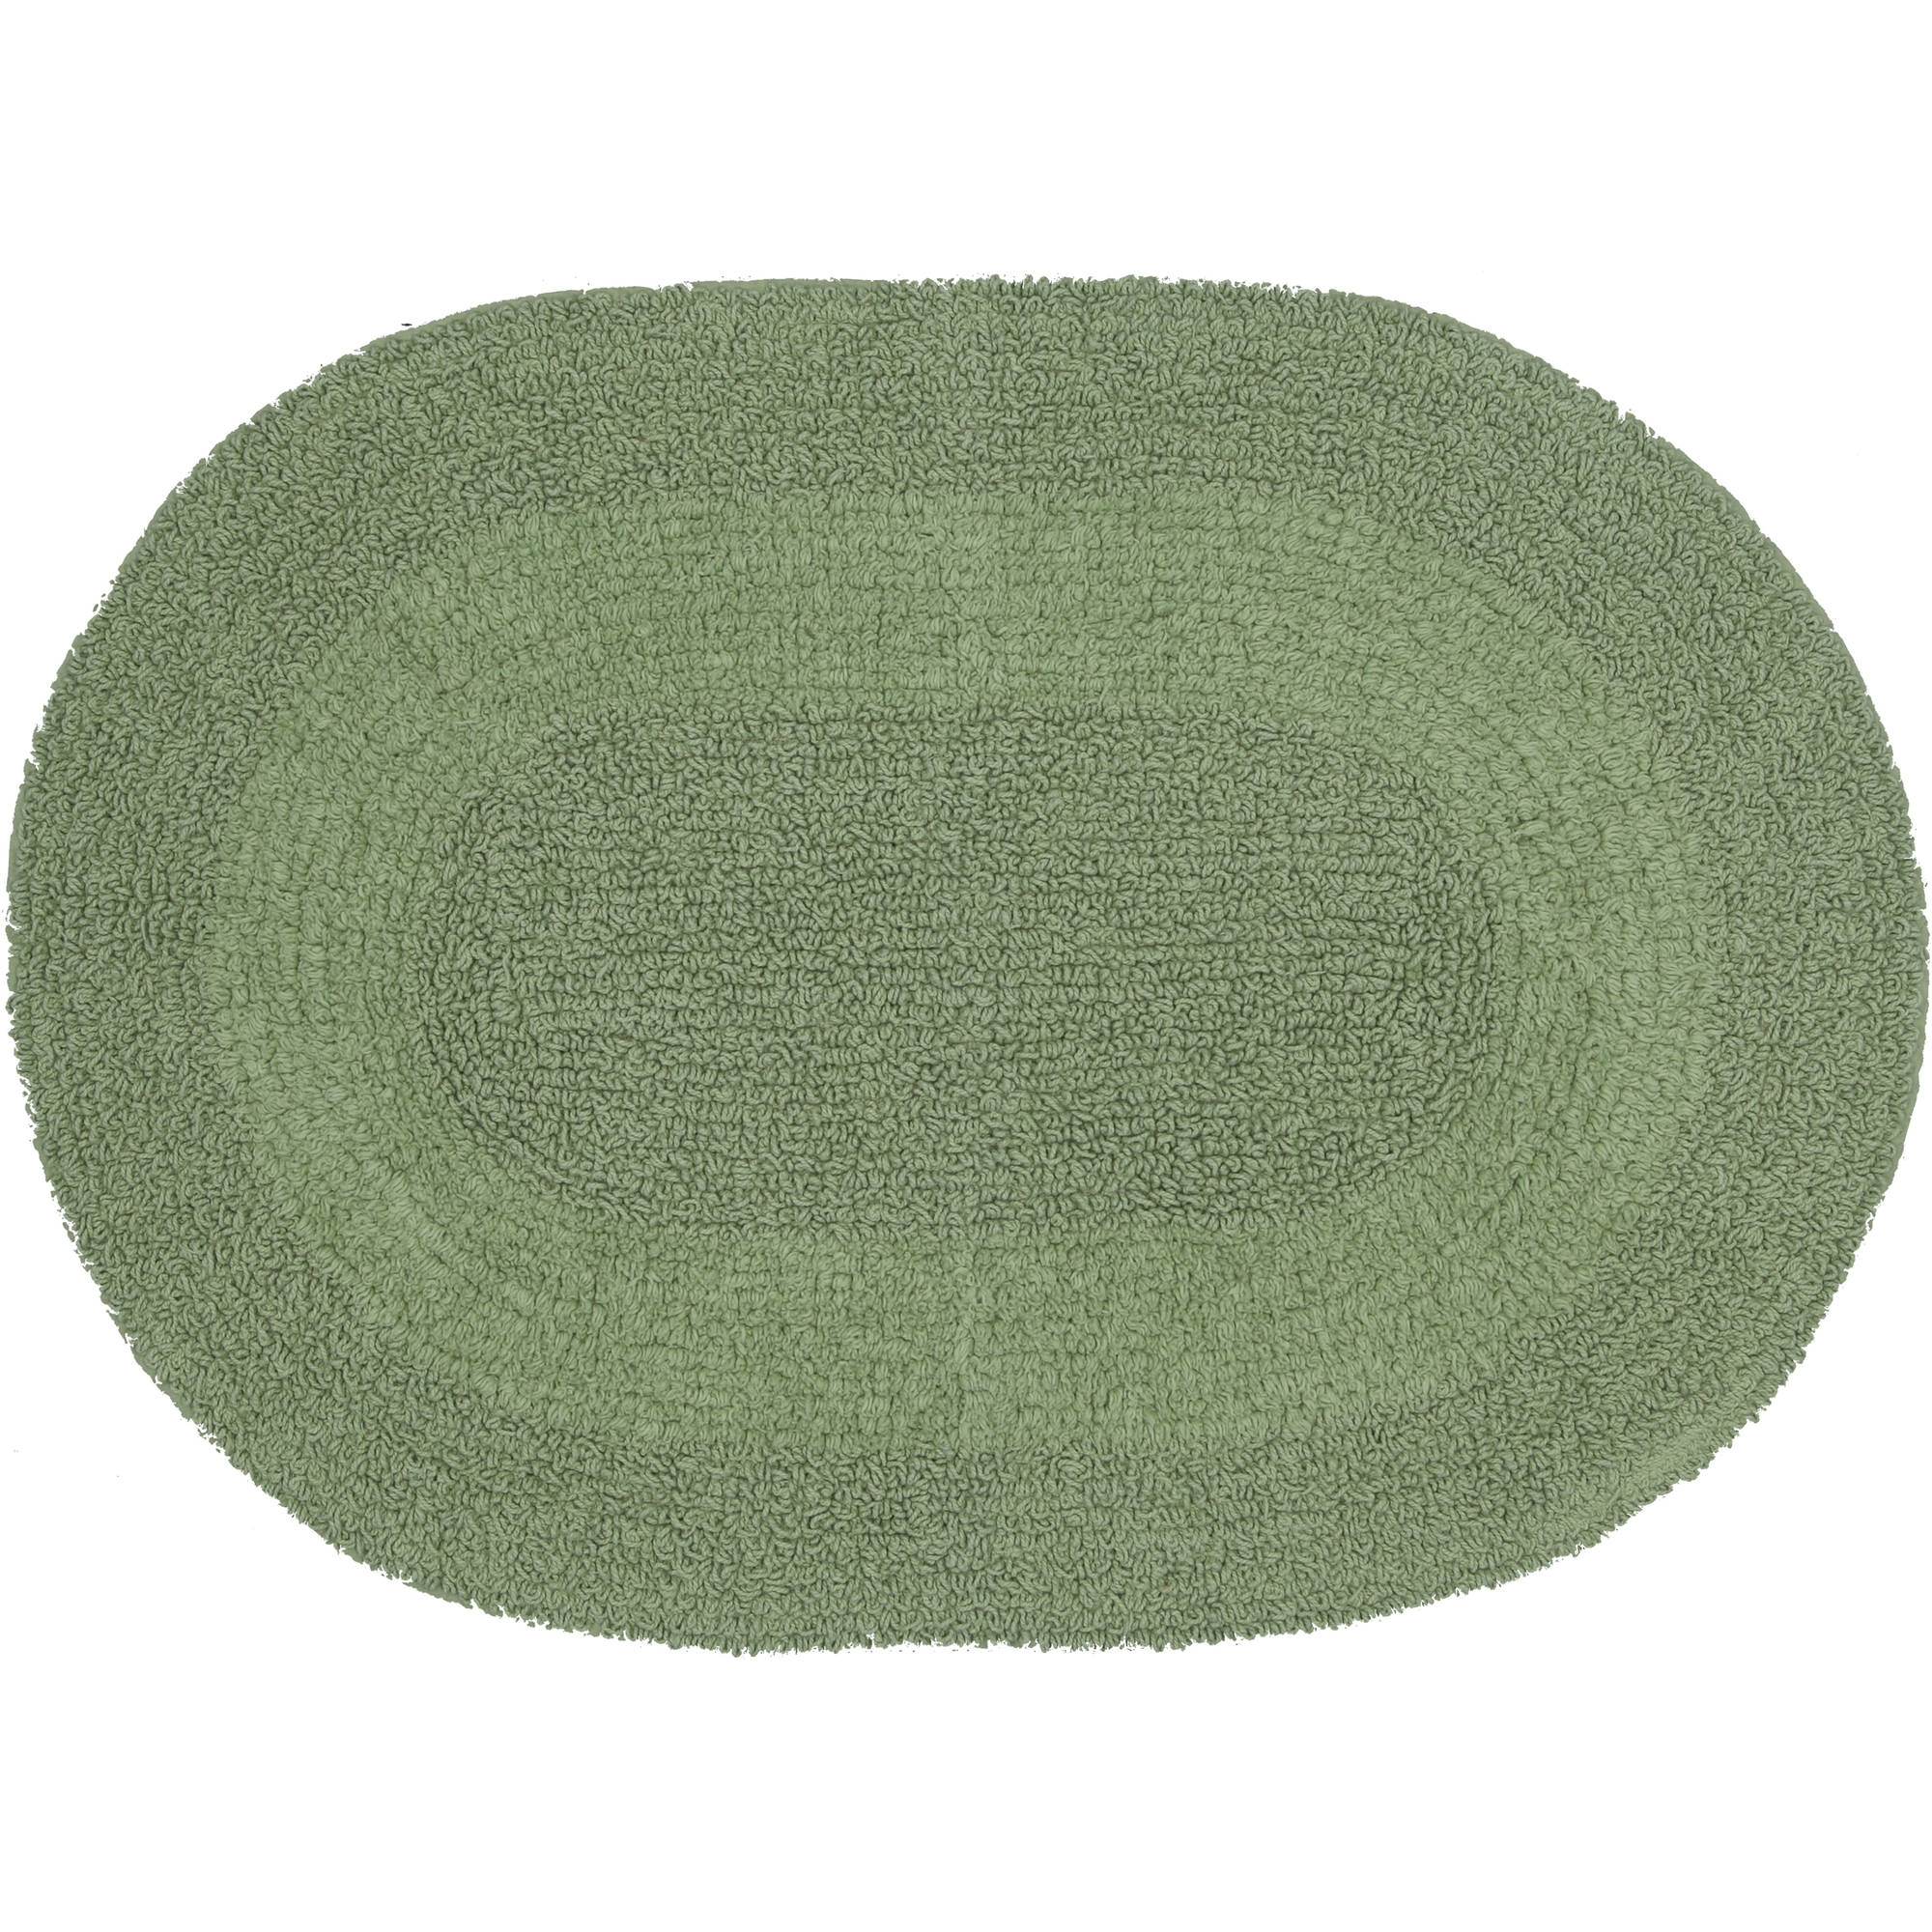 Reversible Oval Bath Rugs